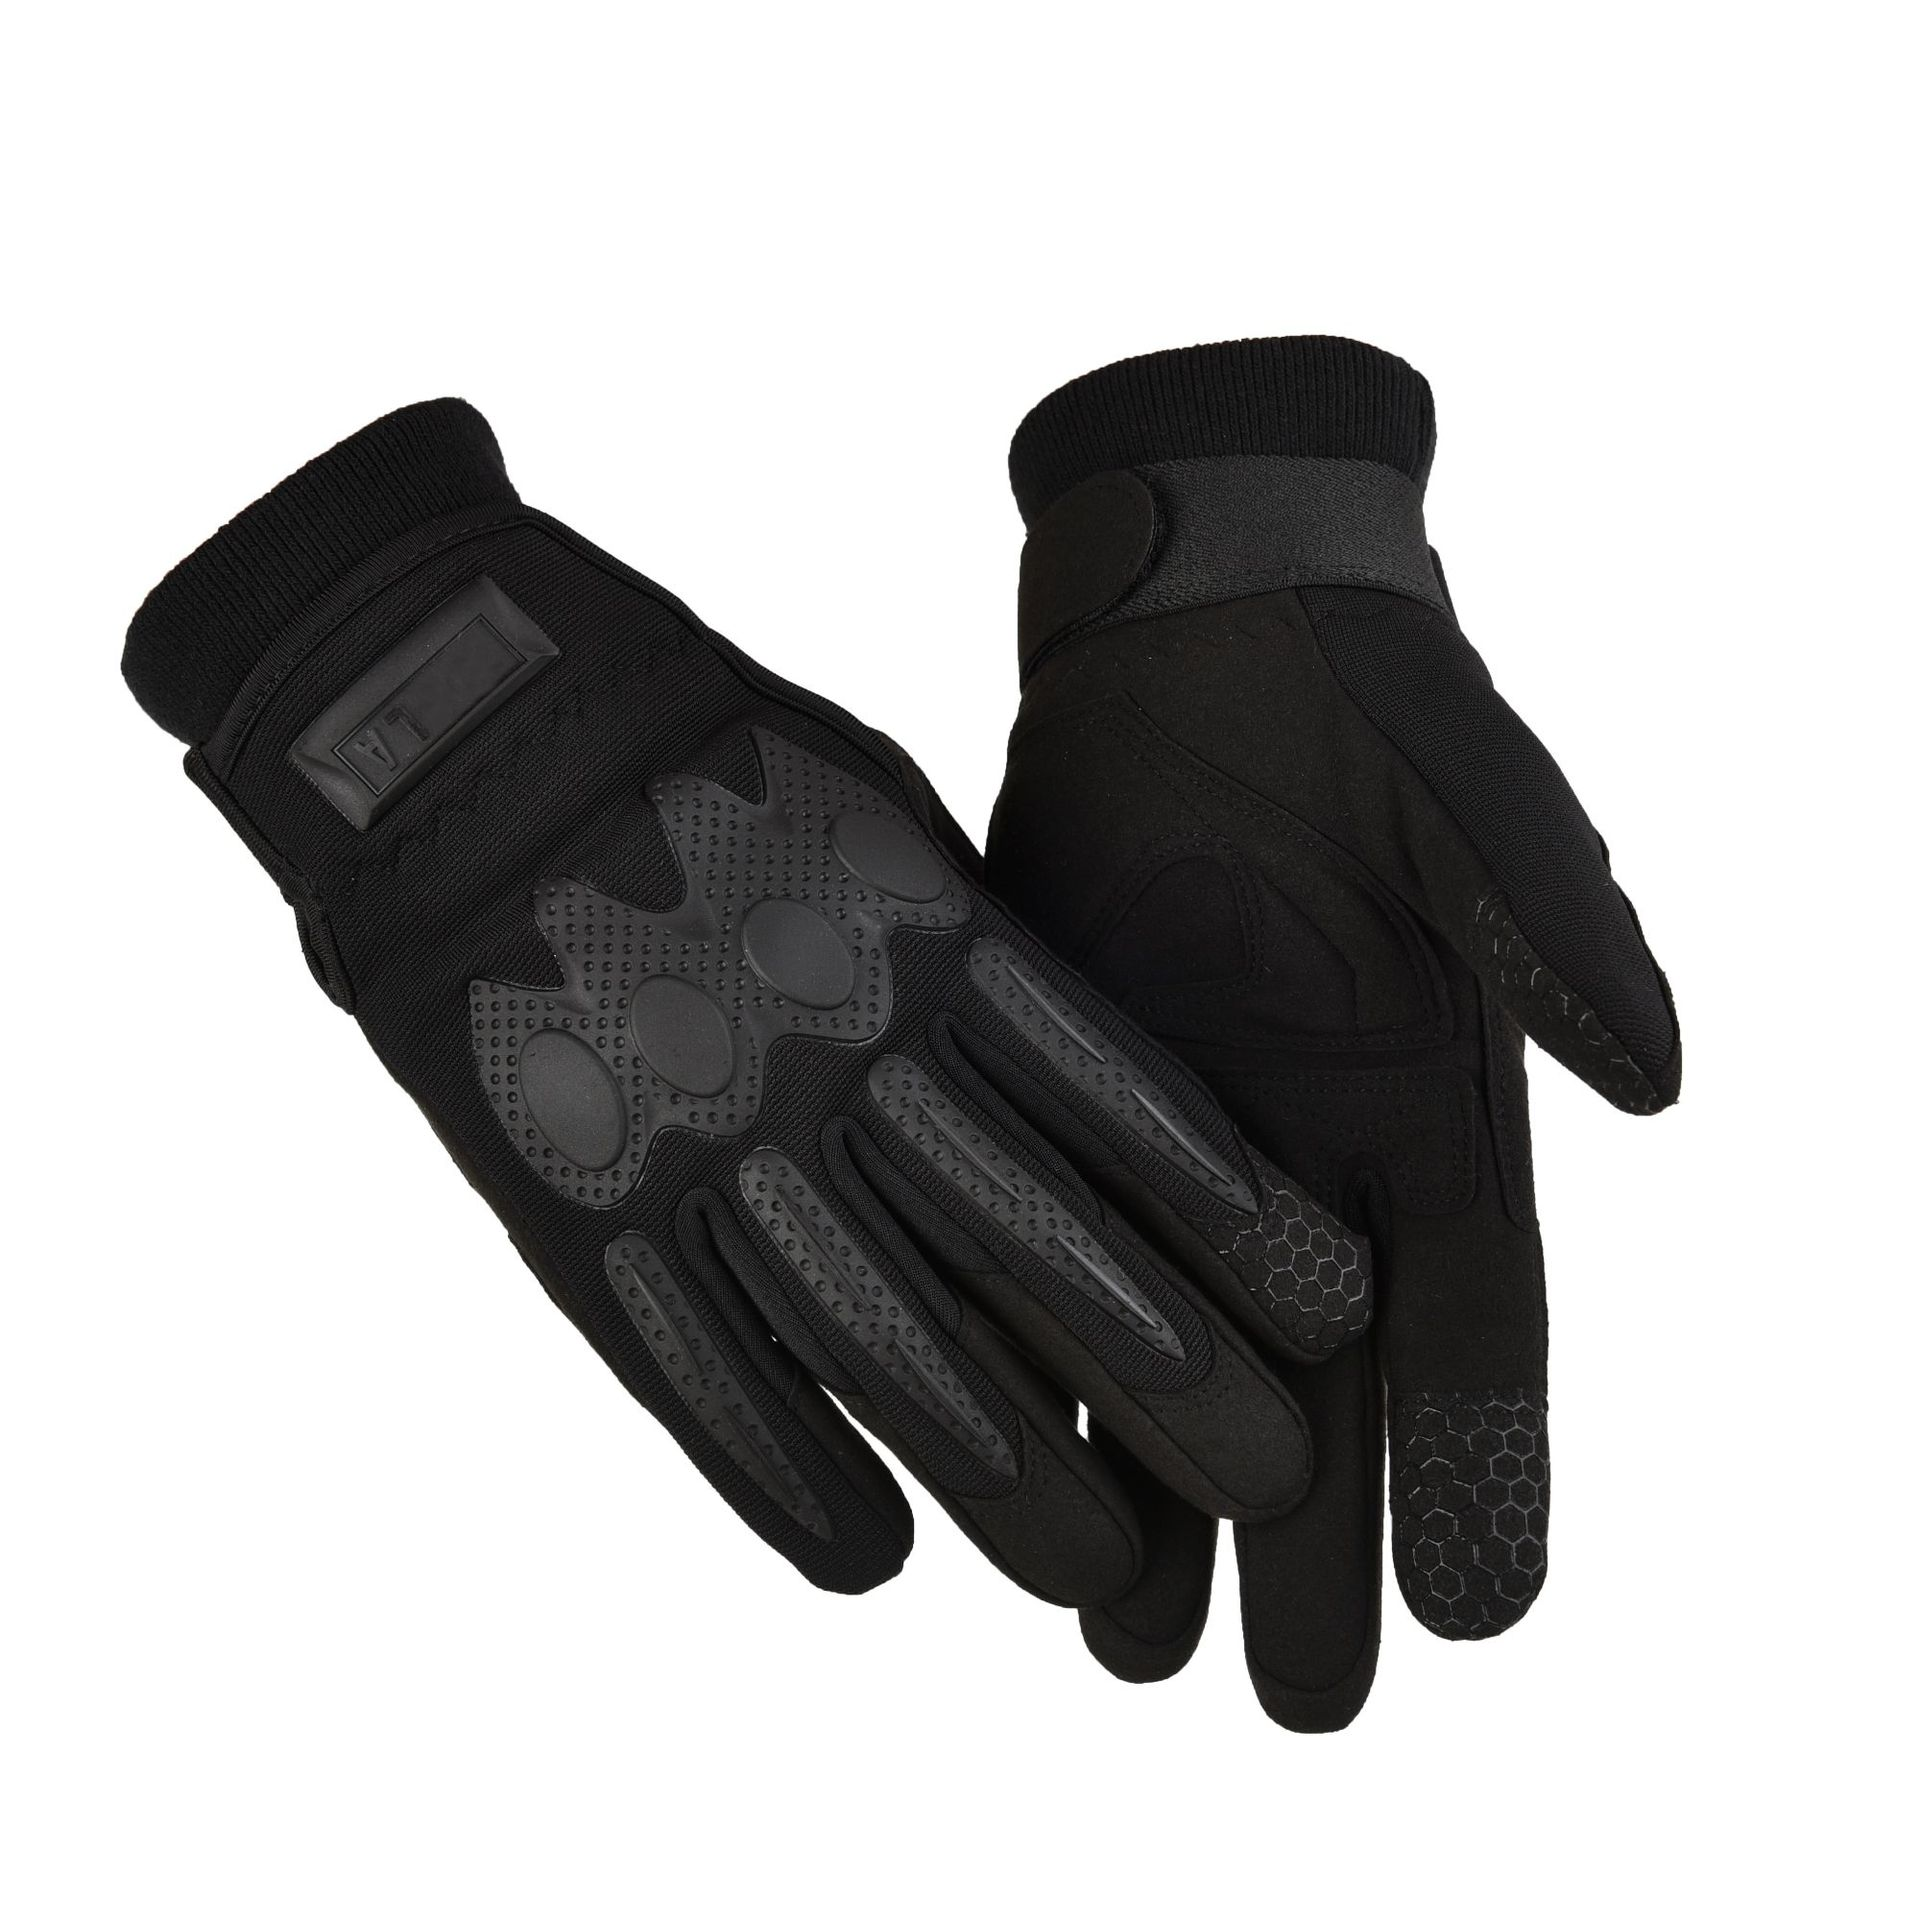 Tactical Sports Gloves for Outdoor Activities